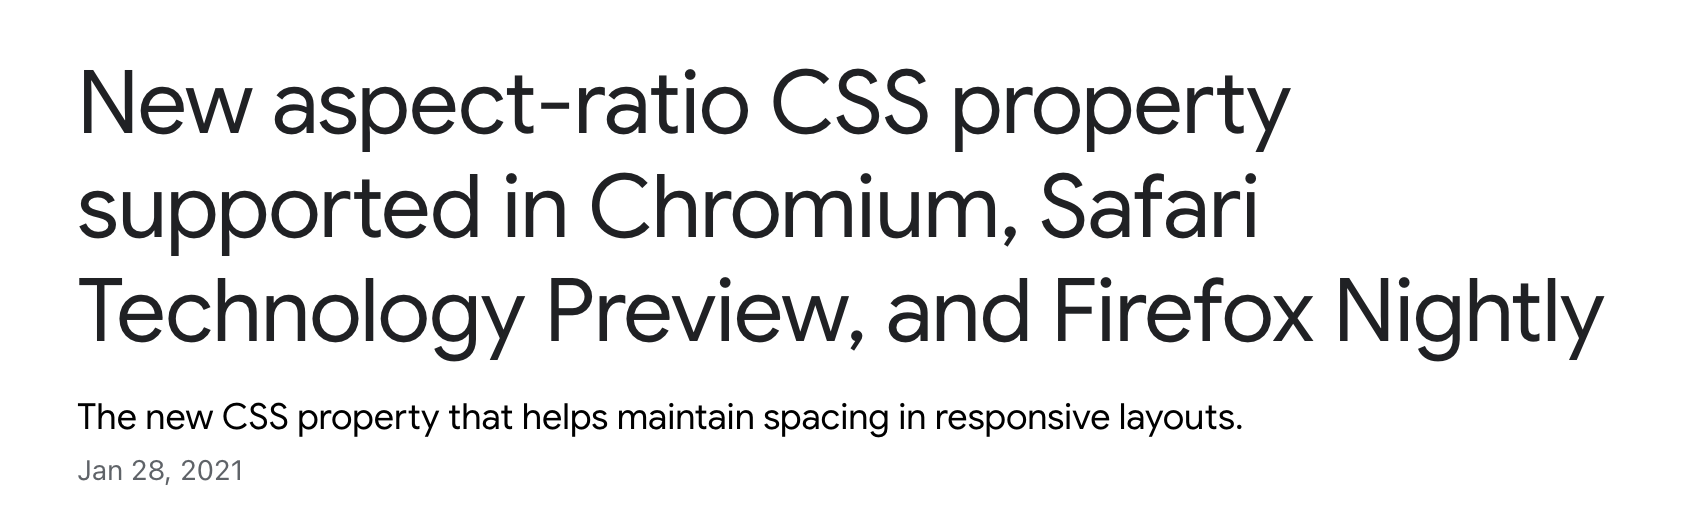 New aspect-ratio CSS property supported in Chromium, Safari Technology Preview, and Firefox Nightly